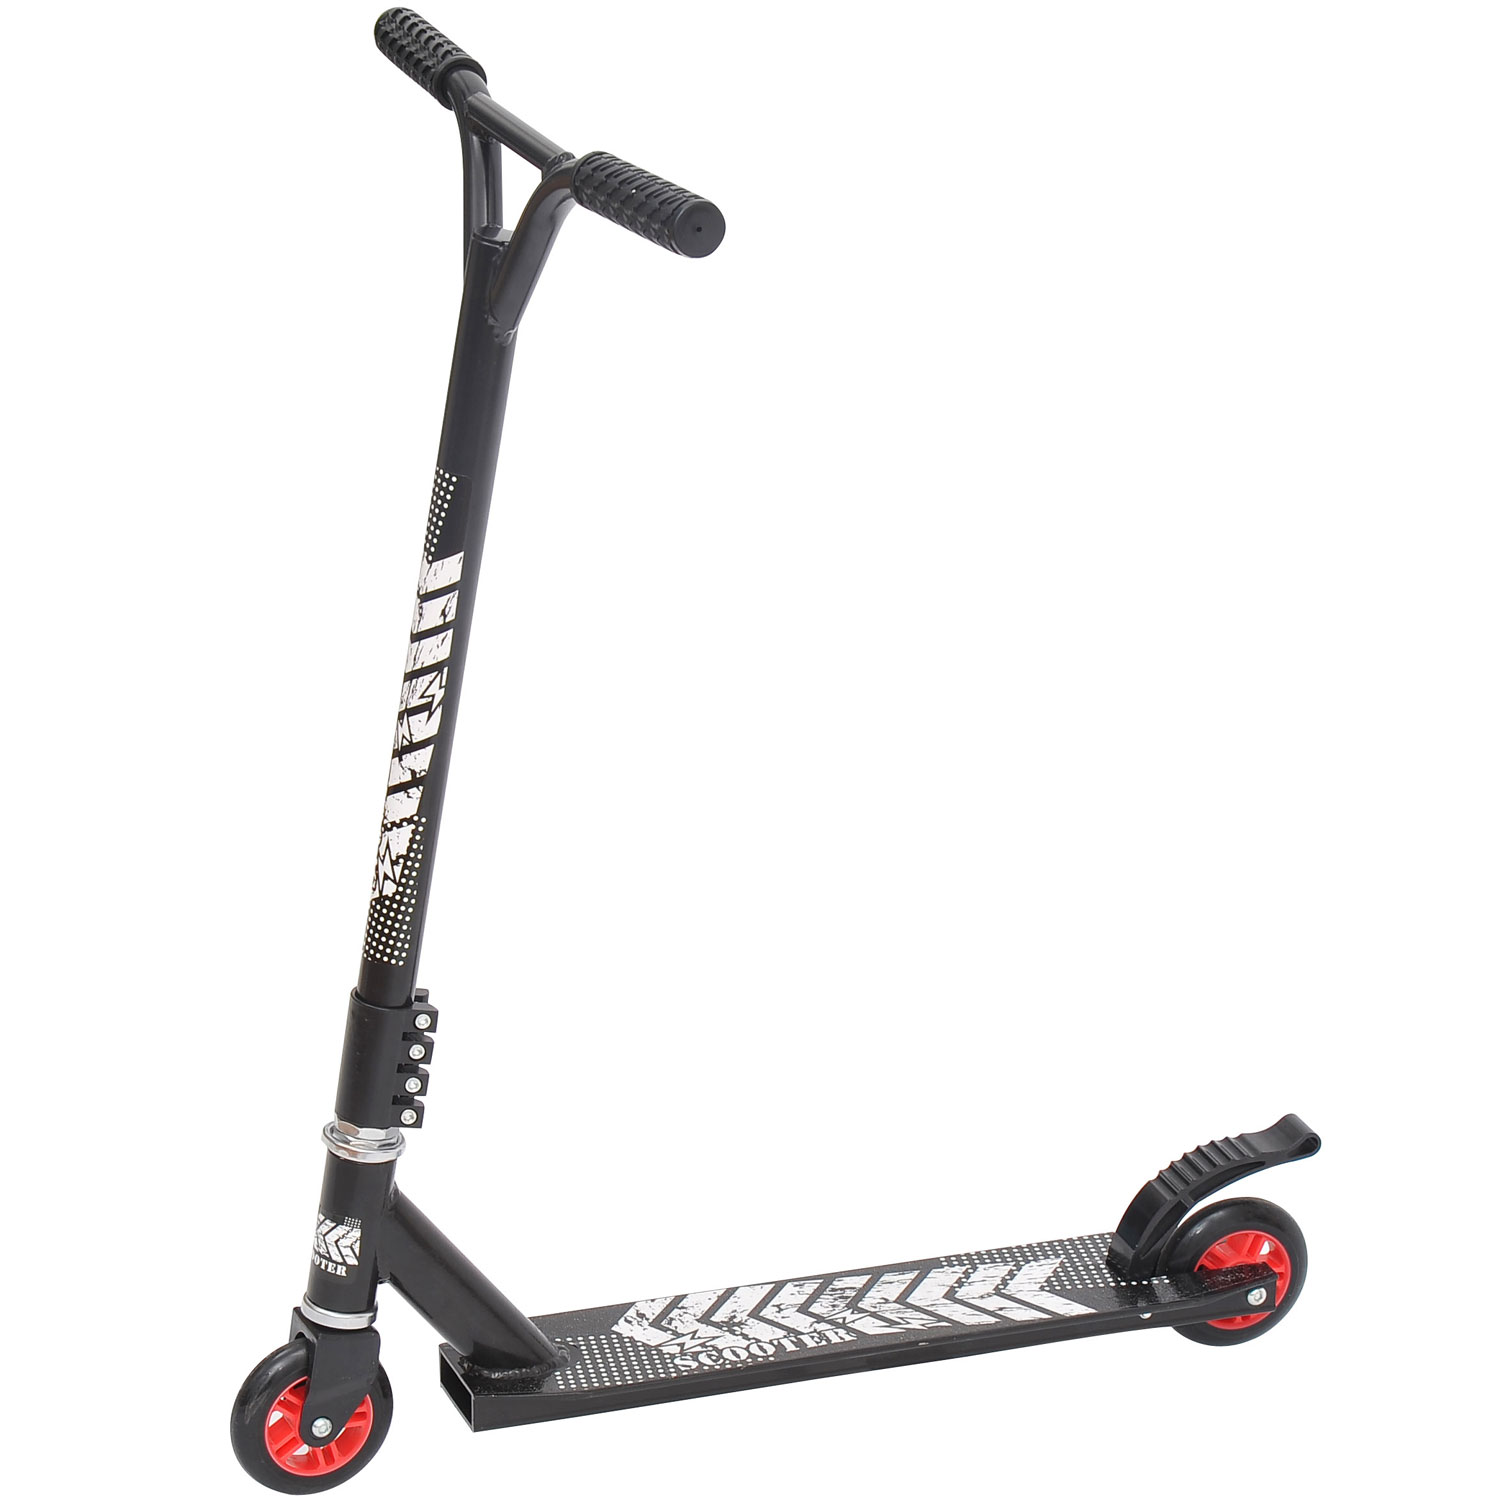 Image of CAD $59.99 HOMCOM Pro Stunt Scooter Push Street Bike Kids Children Outdoor-Black / Kick Outdoor (Black) Aluminum Fixed Bar BK Canada 24144521863